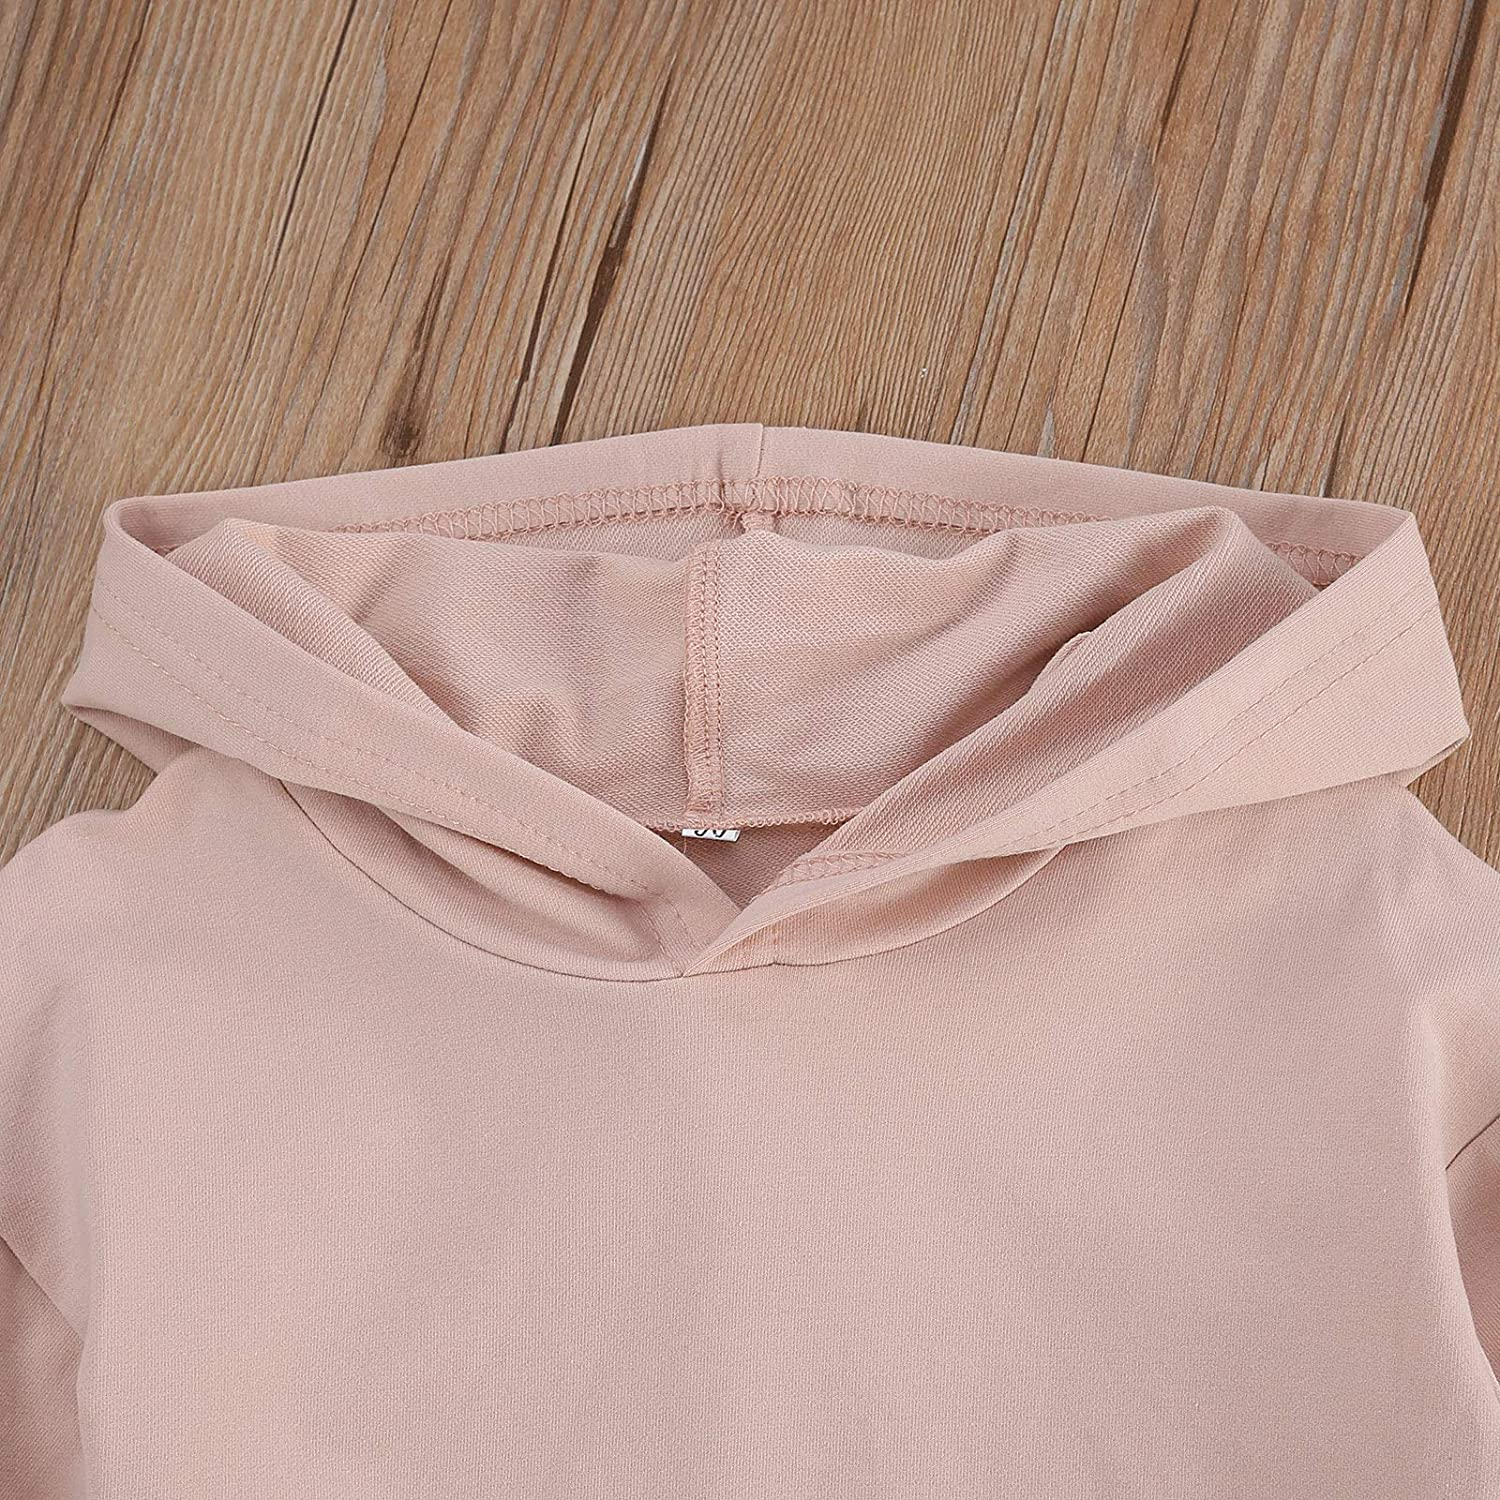 Toddler Baby Girl Hoodie Sweatshirt Dress Tunic Solid Long Sleeve Hooded Pullover Top Fall Winter Clothes